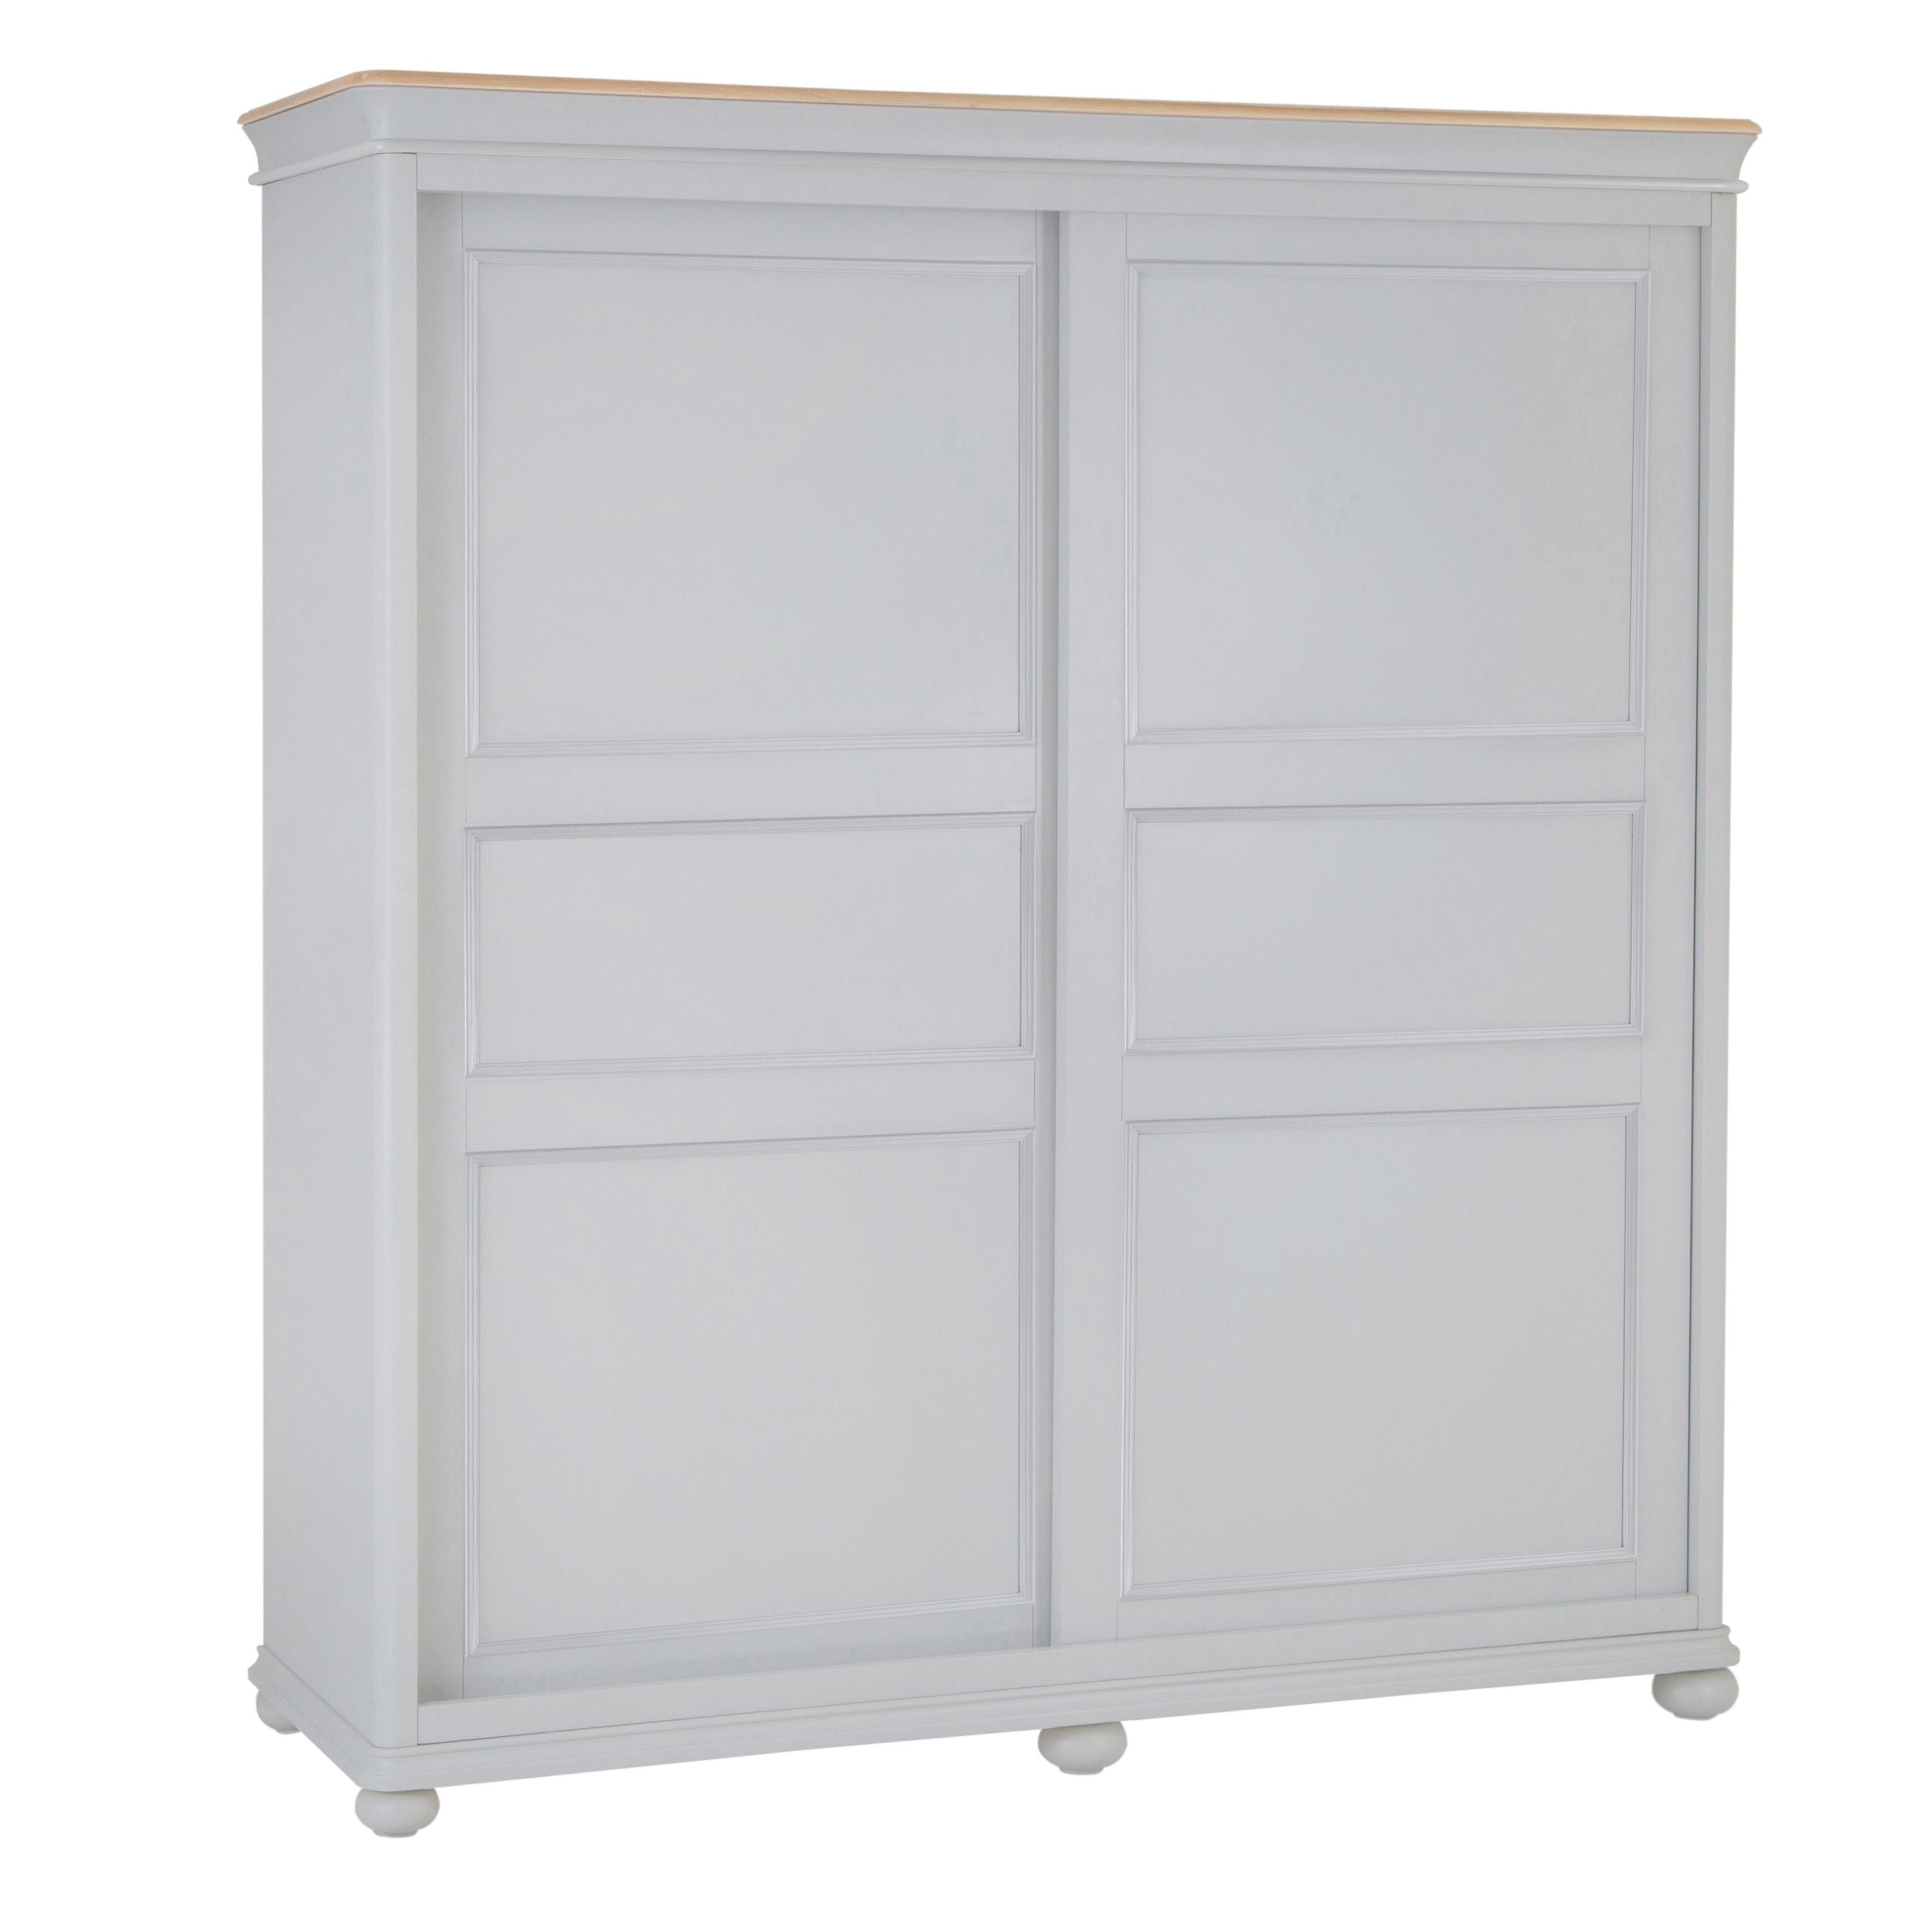 MAINE - Sliding Door Wardrobe